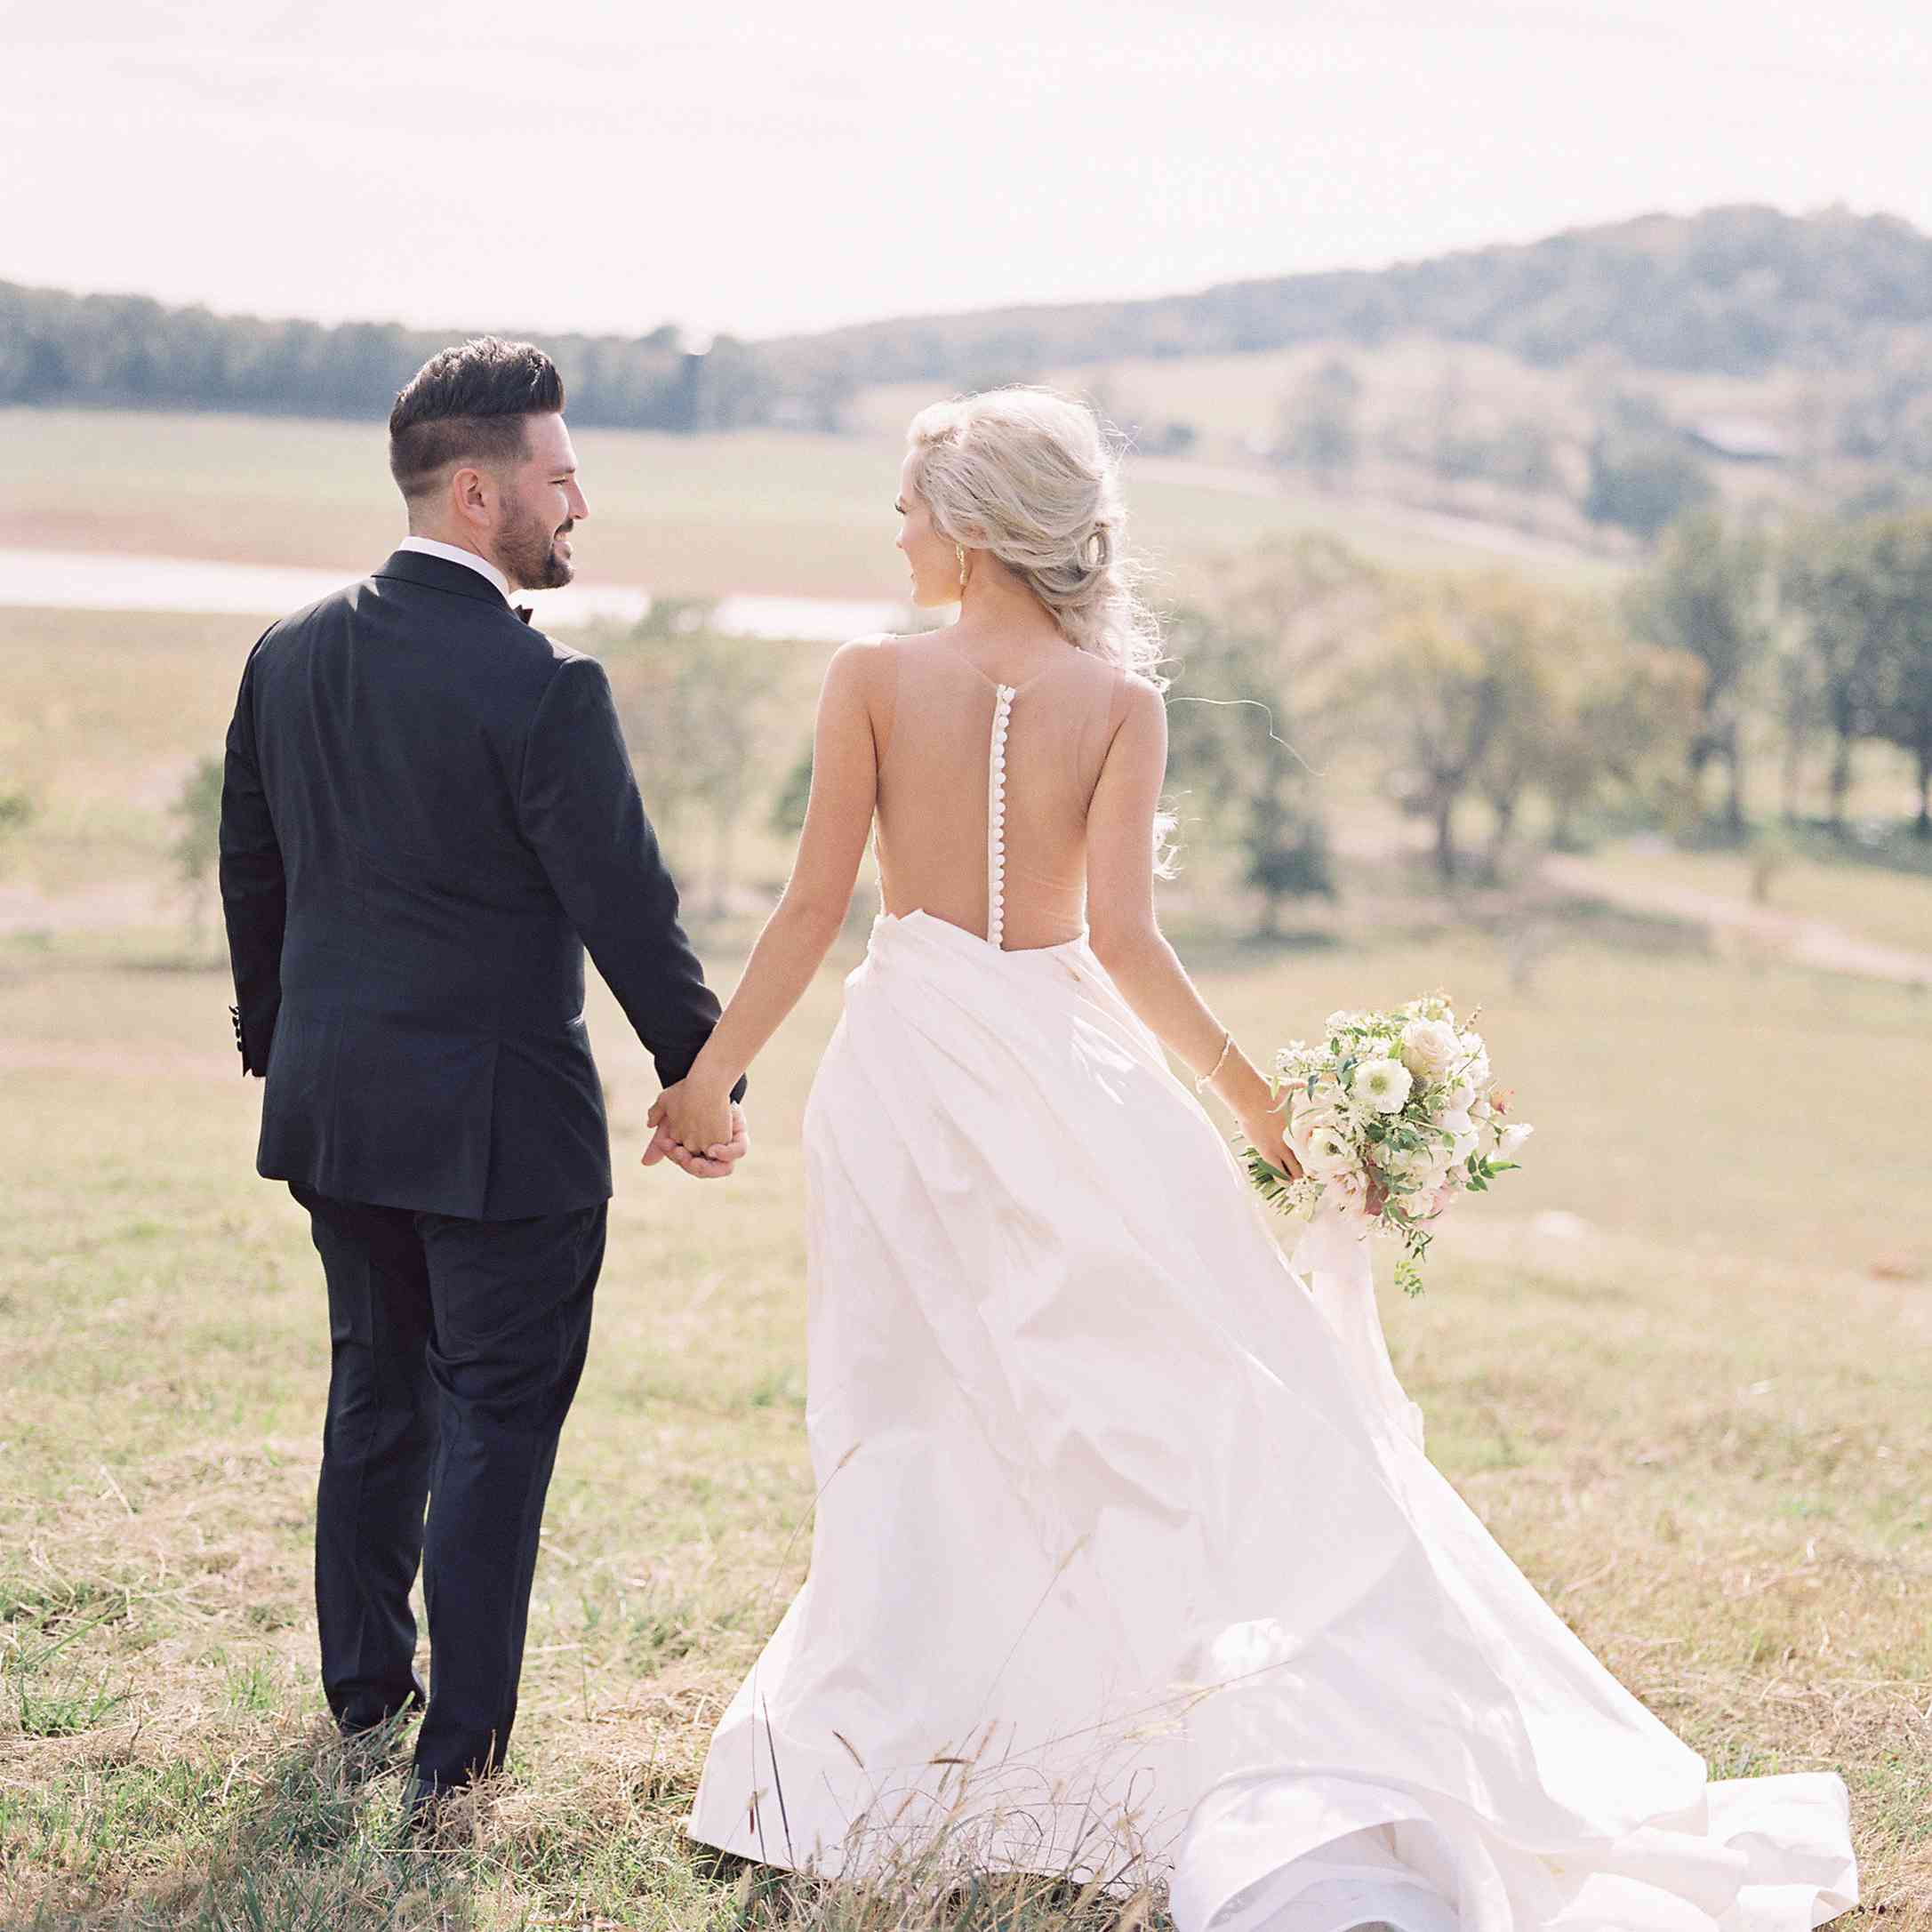 <p>Bride and groom shot from back</p><br><br>